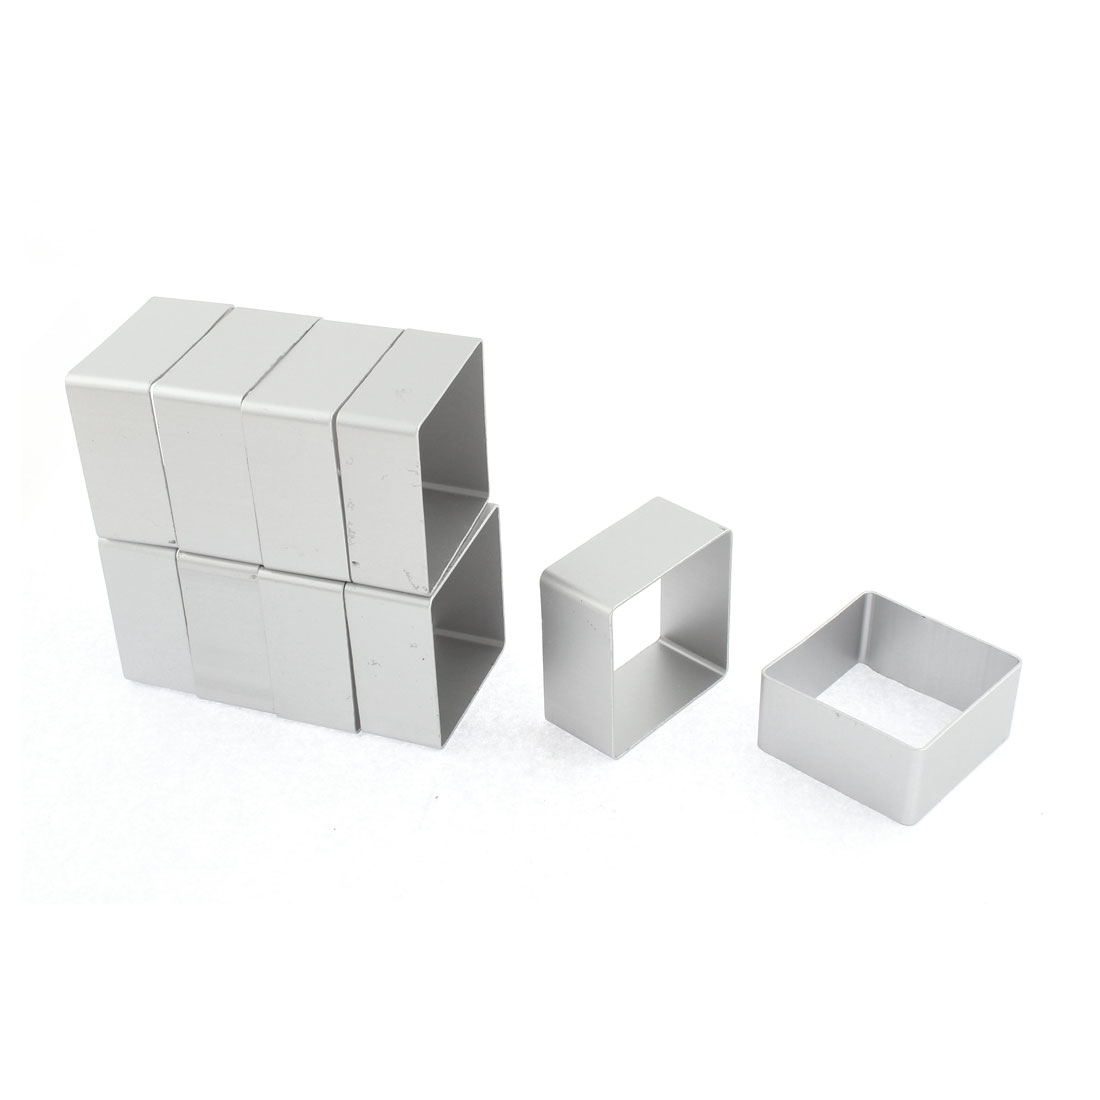 48mm x 48mm x 23mm Cookie Biscuit Baking Cake Square Aluminum DIY Mold Mould Cutter 10pcs